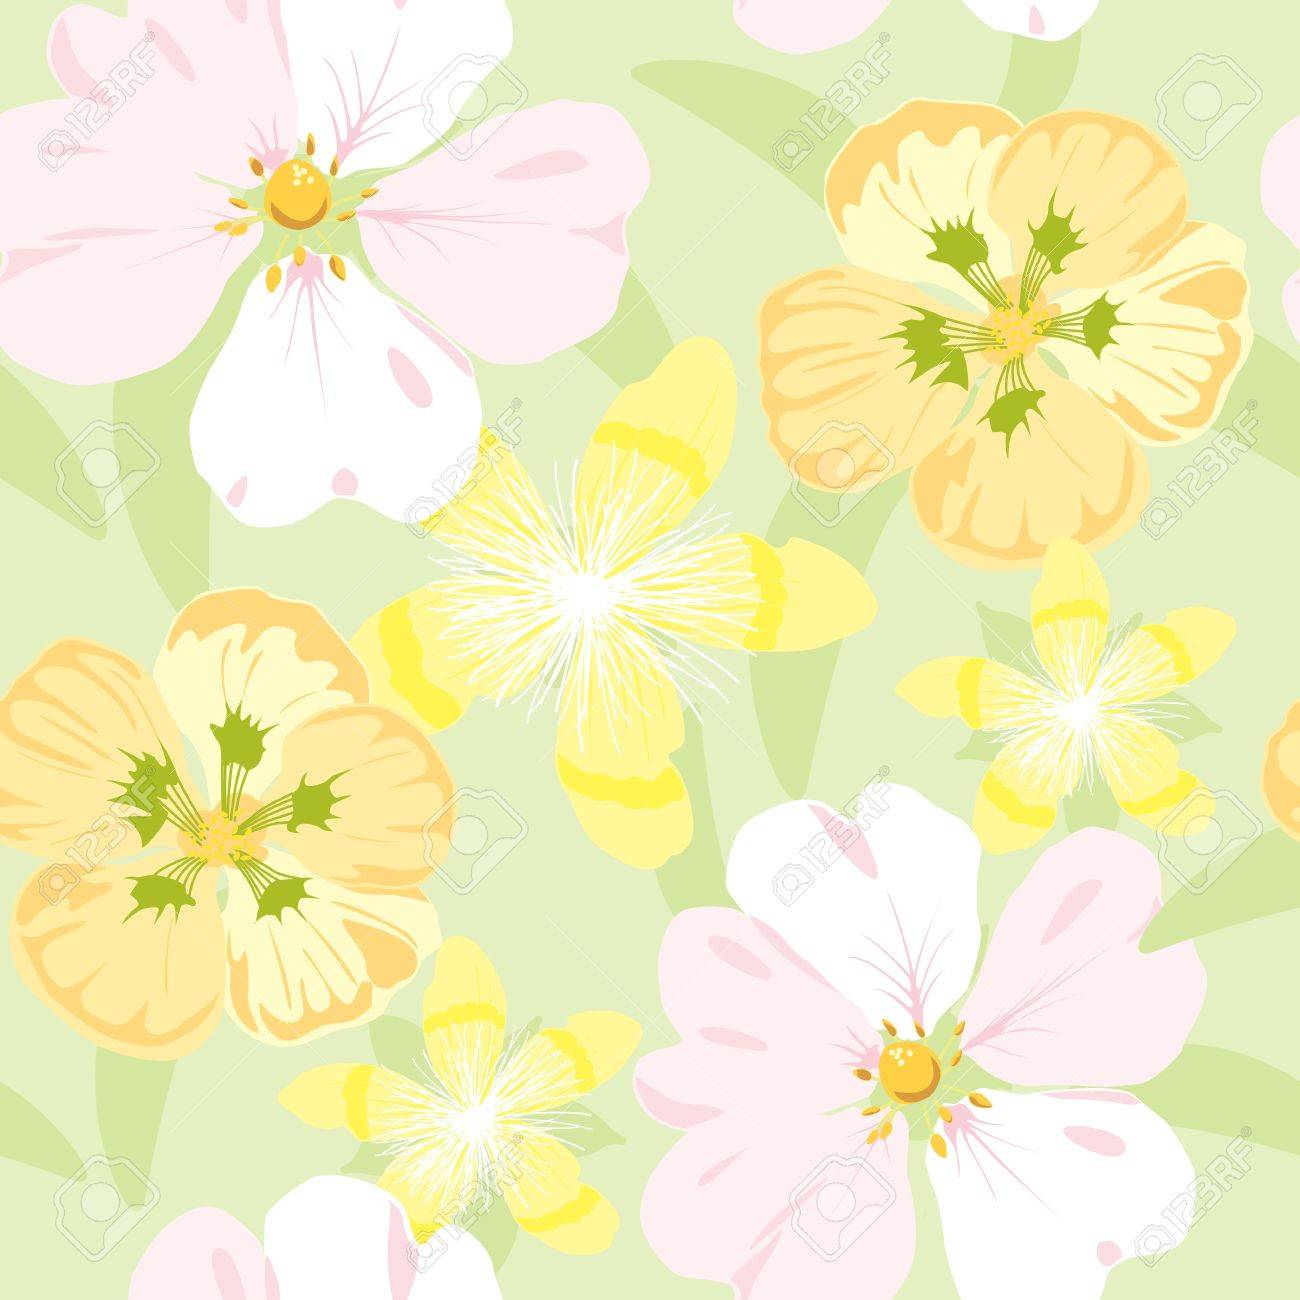 floral garden, wrapping, seamless pattern, pastel background illustration Stock Vector - 14410189